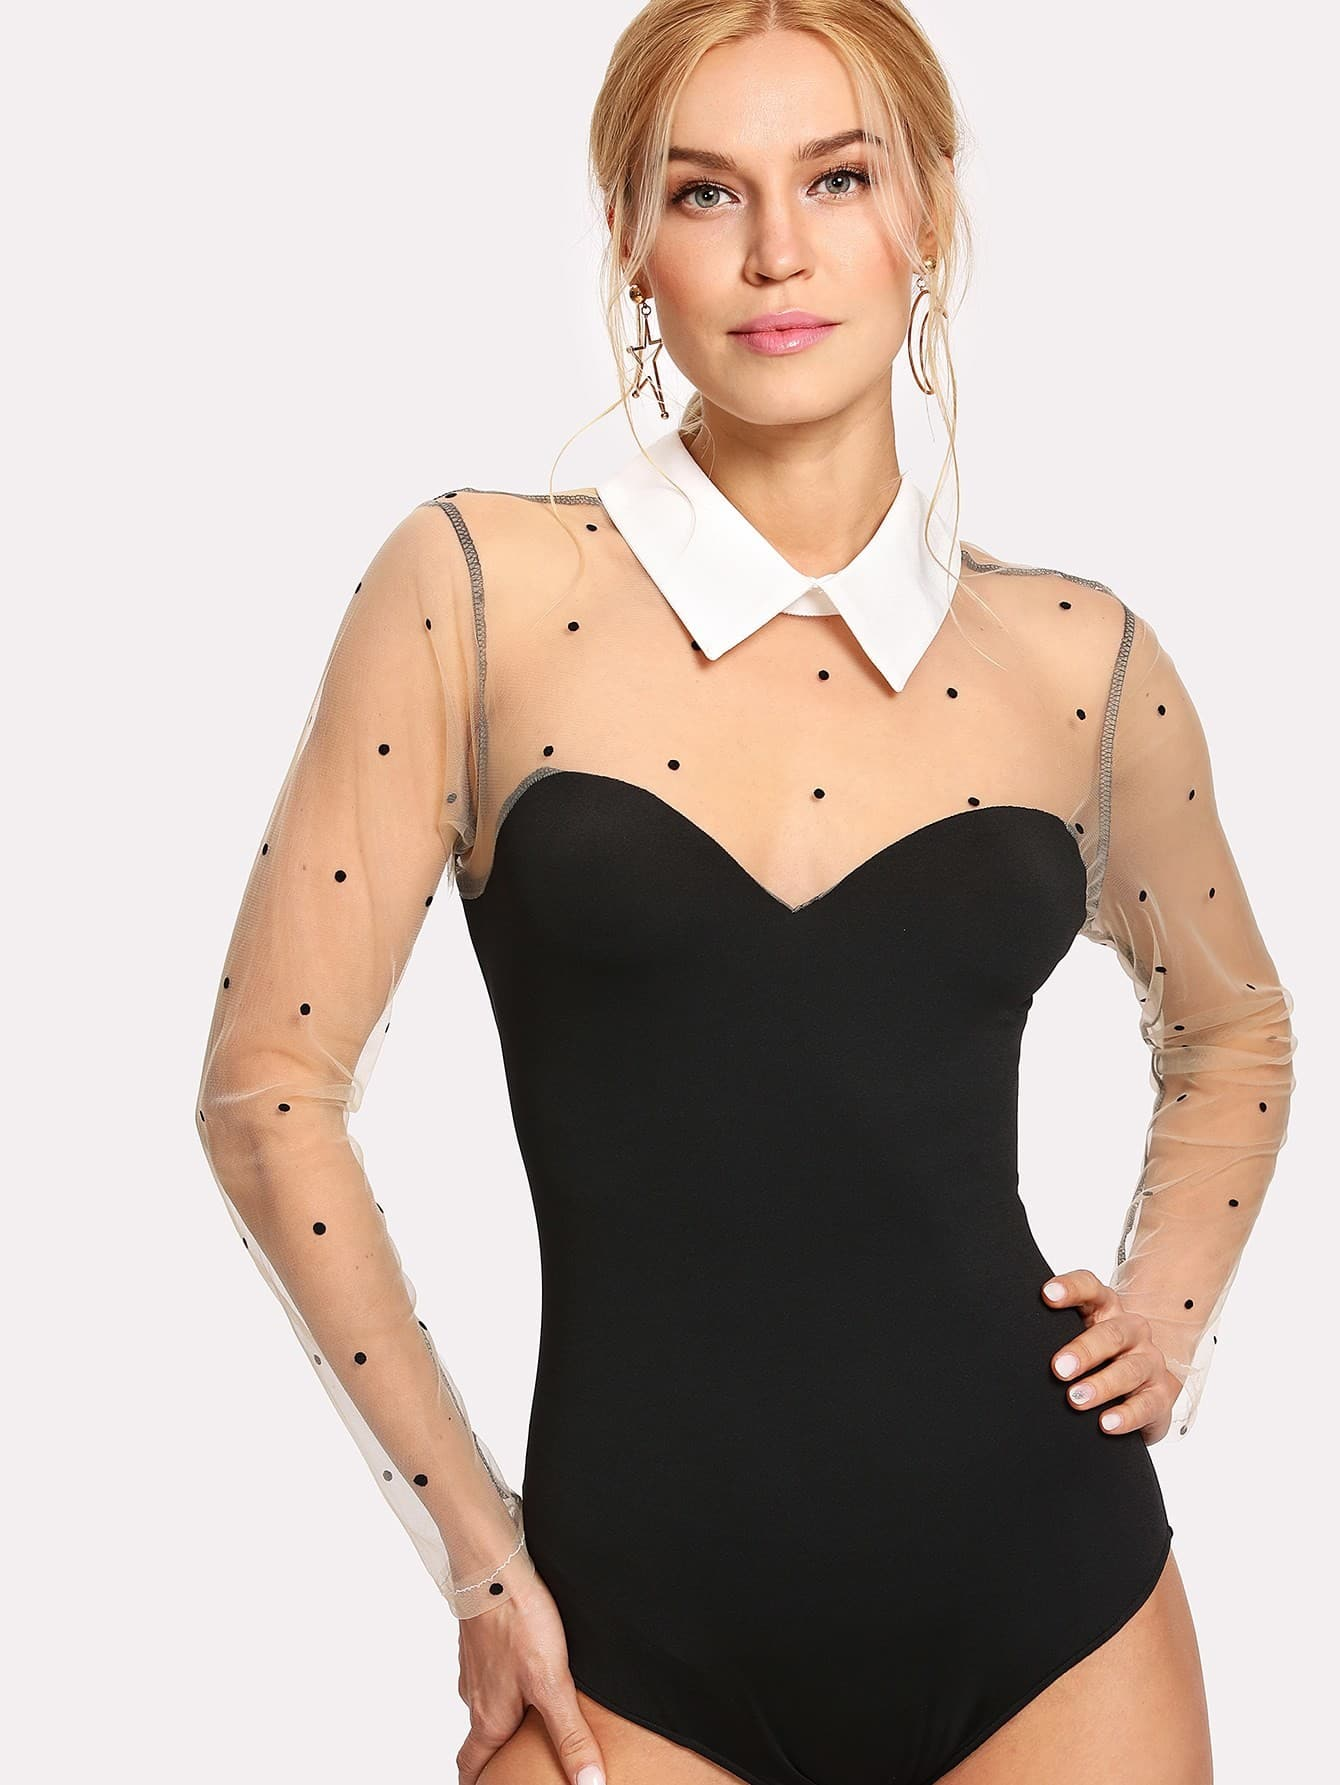 Contrast Dotted Mesh Bodysuit contrast dotted mesh bodysuit